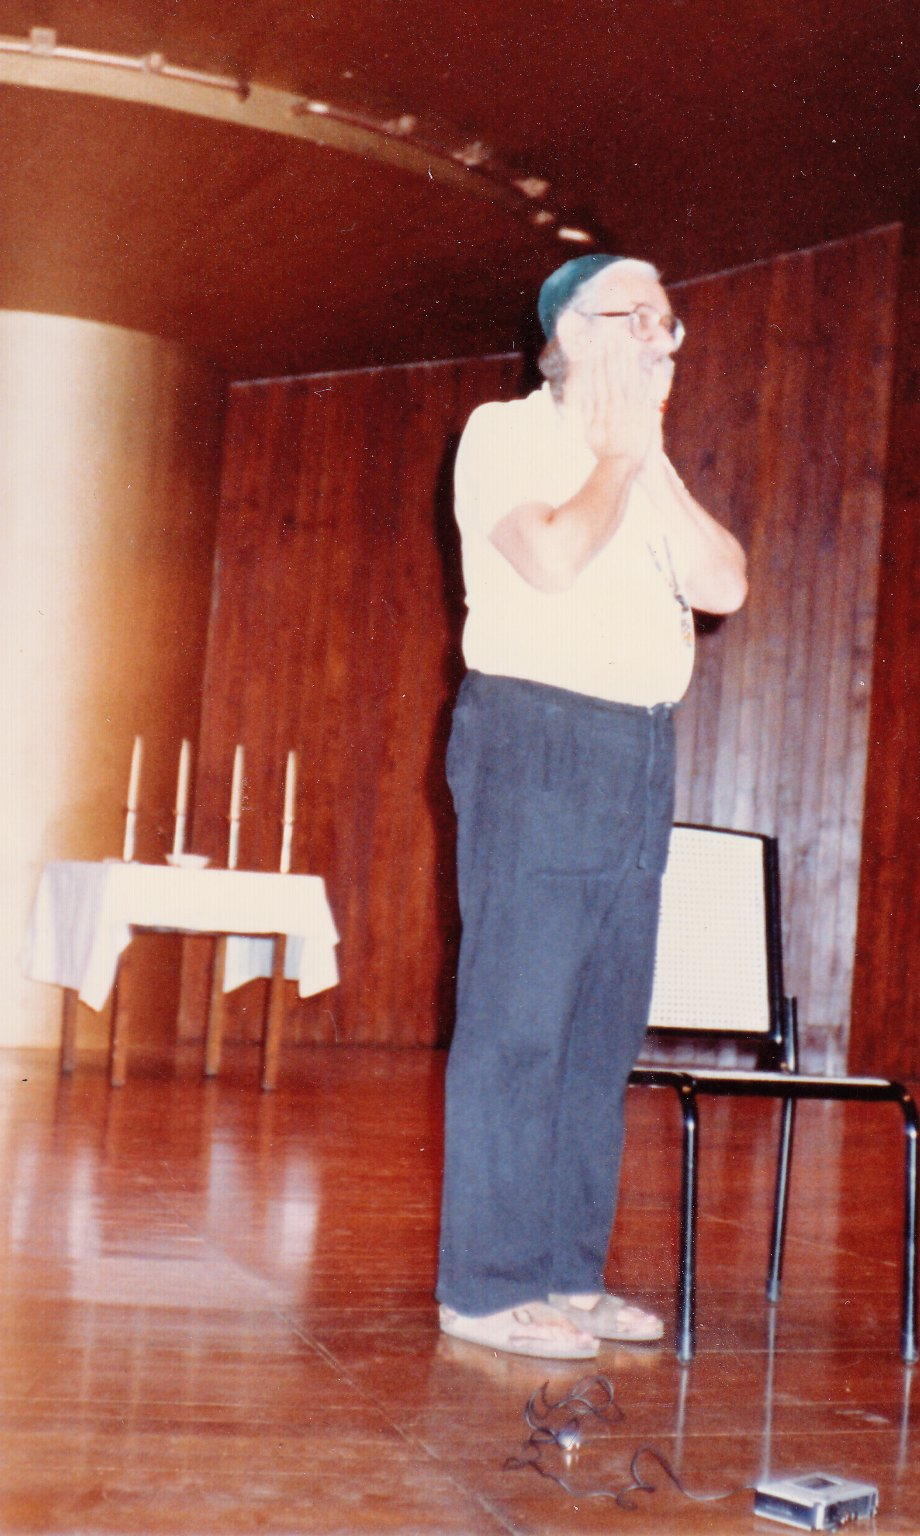 Rabbi Zalman Schachter on stage at the Transpersonal Association Conference in Bombay, India, 1982.